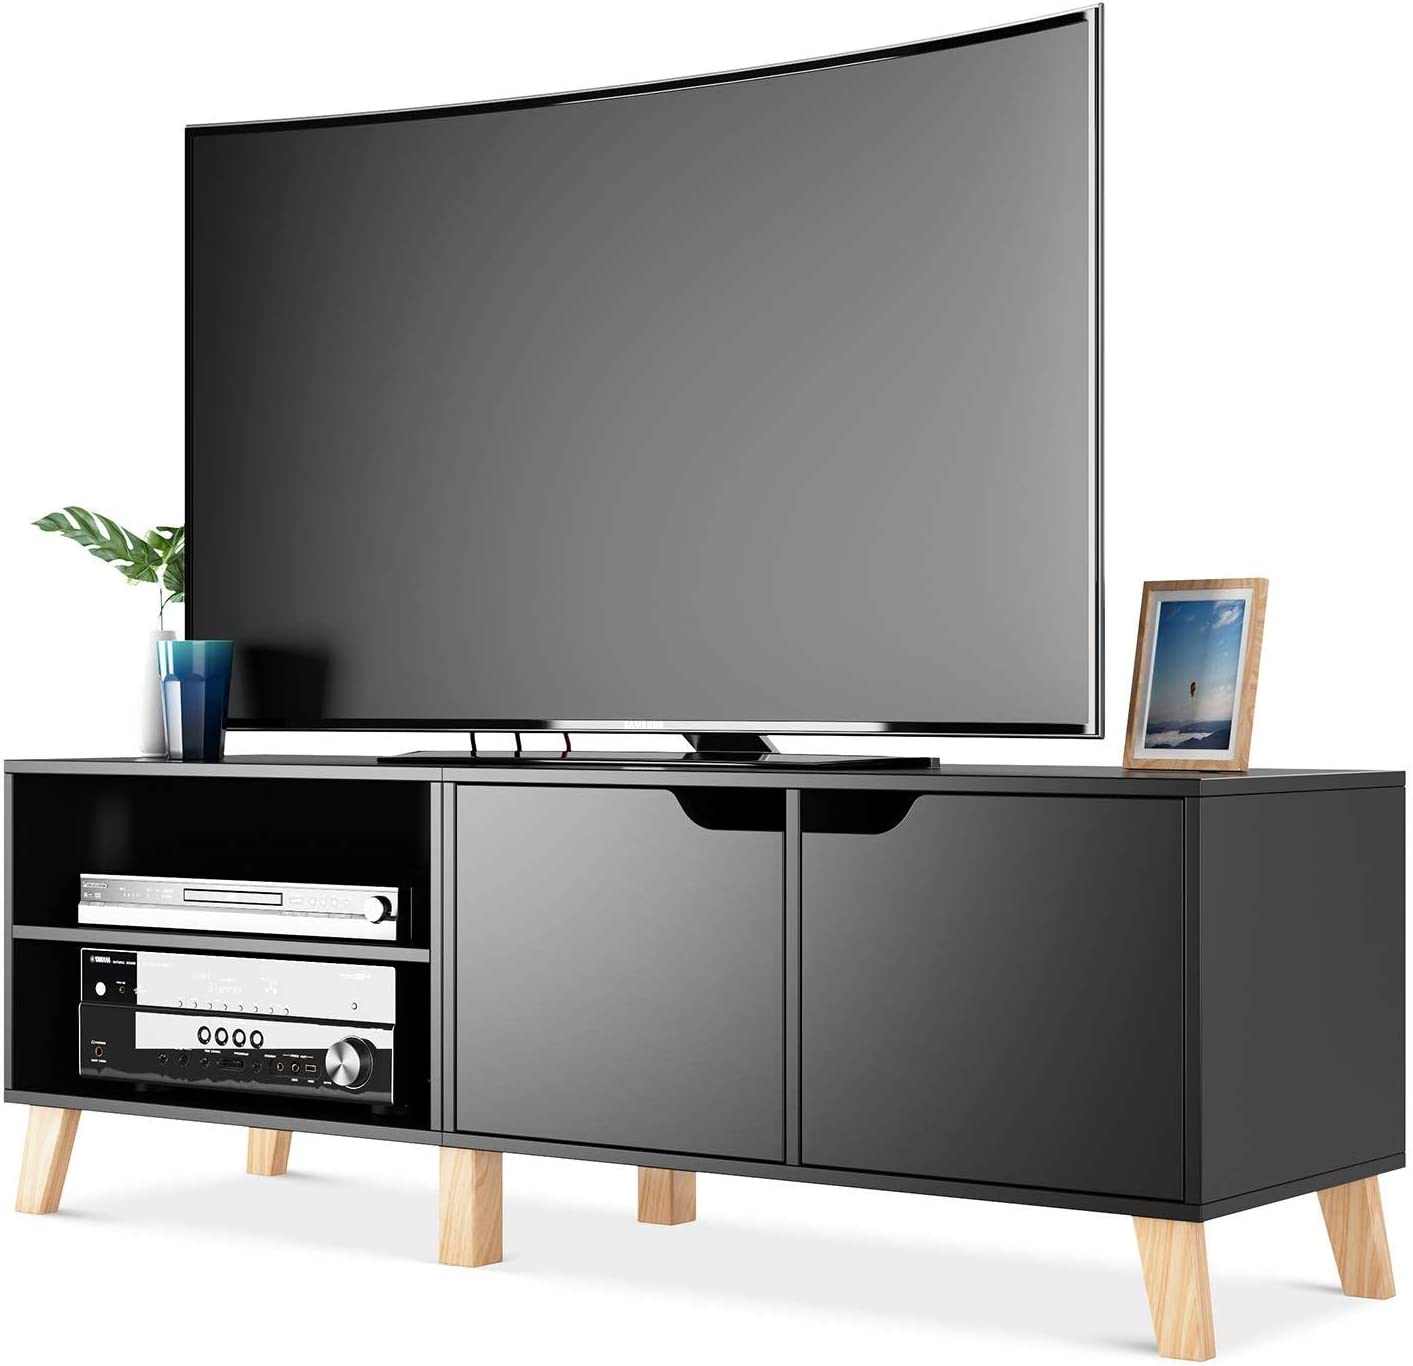 Homfa Tv Stand Tv Cabinet Tv Unit Storage Console With 2 Shelves 2 Doors For Living Room 140x40x48cm Black Amazon Co Uk Kitchen Home